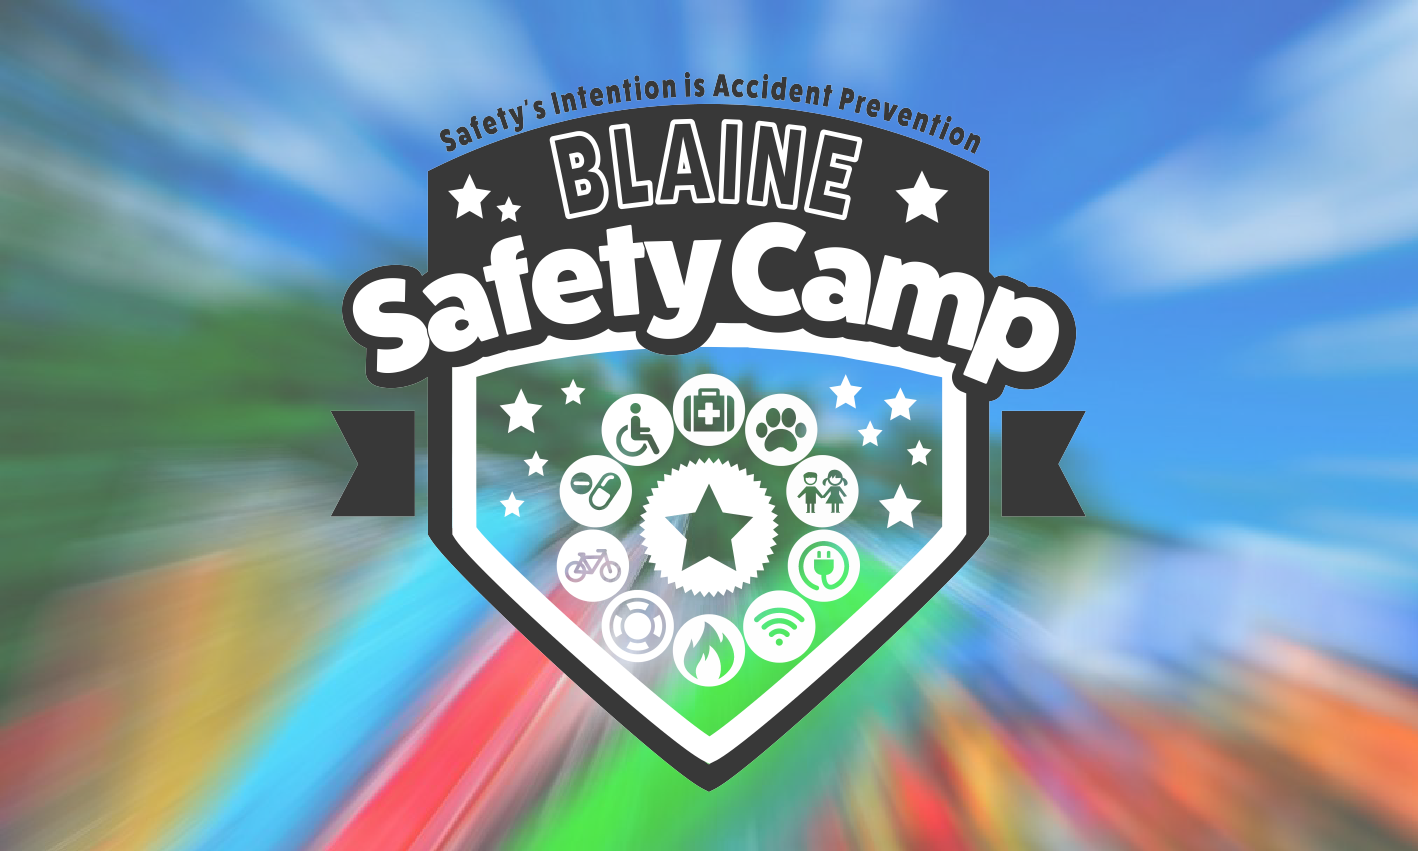 Safety Camp Full Color Logo Design